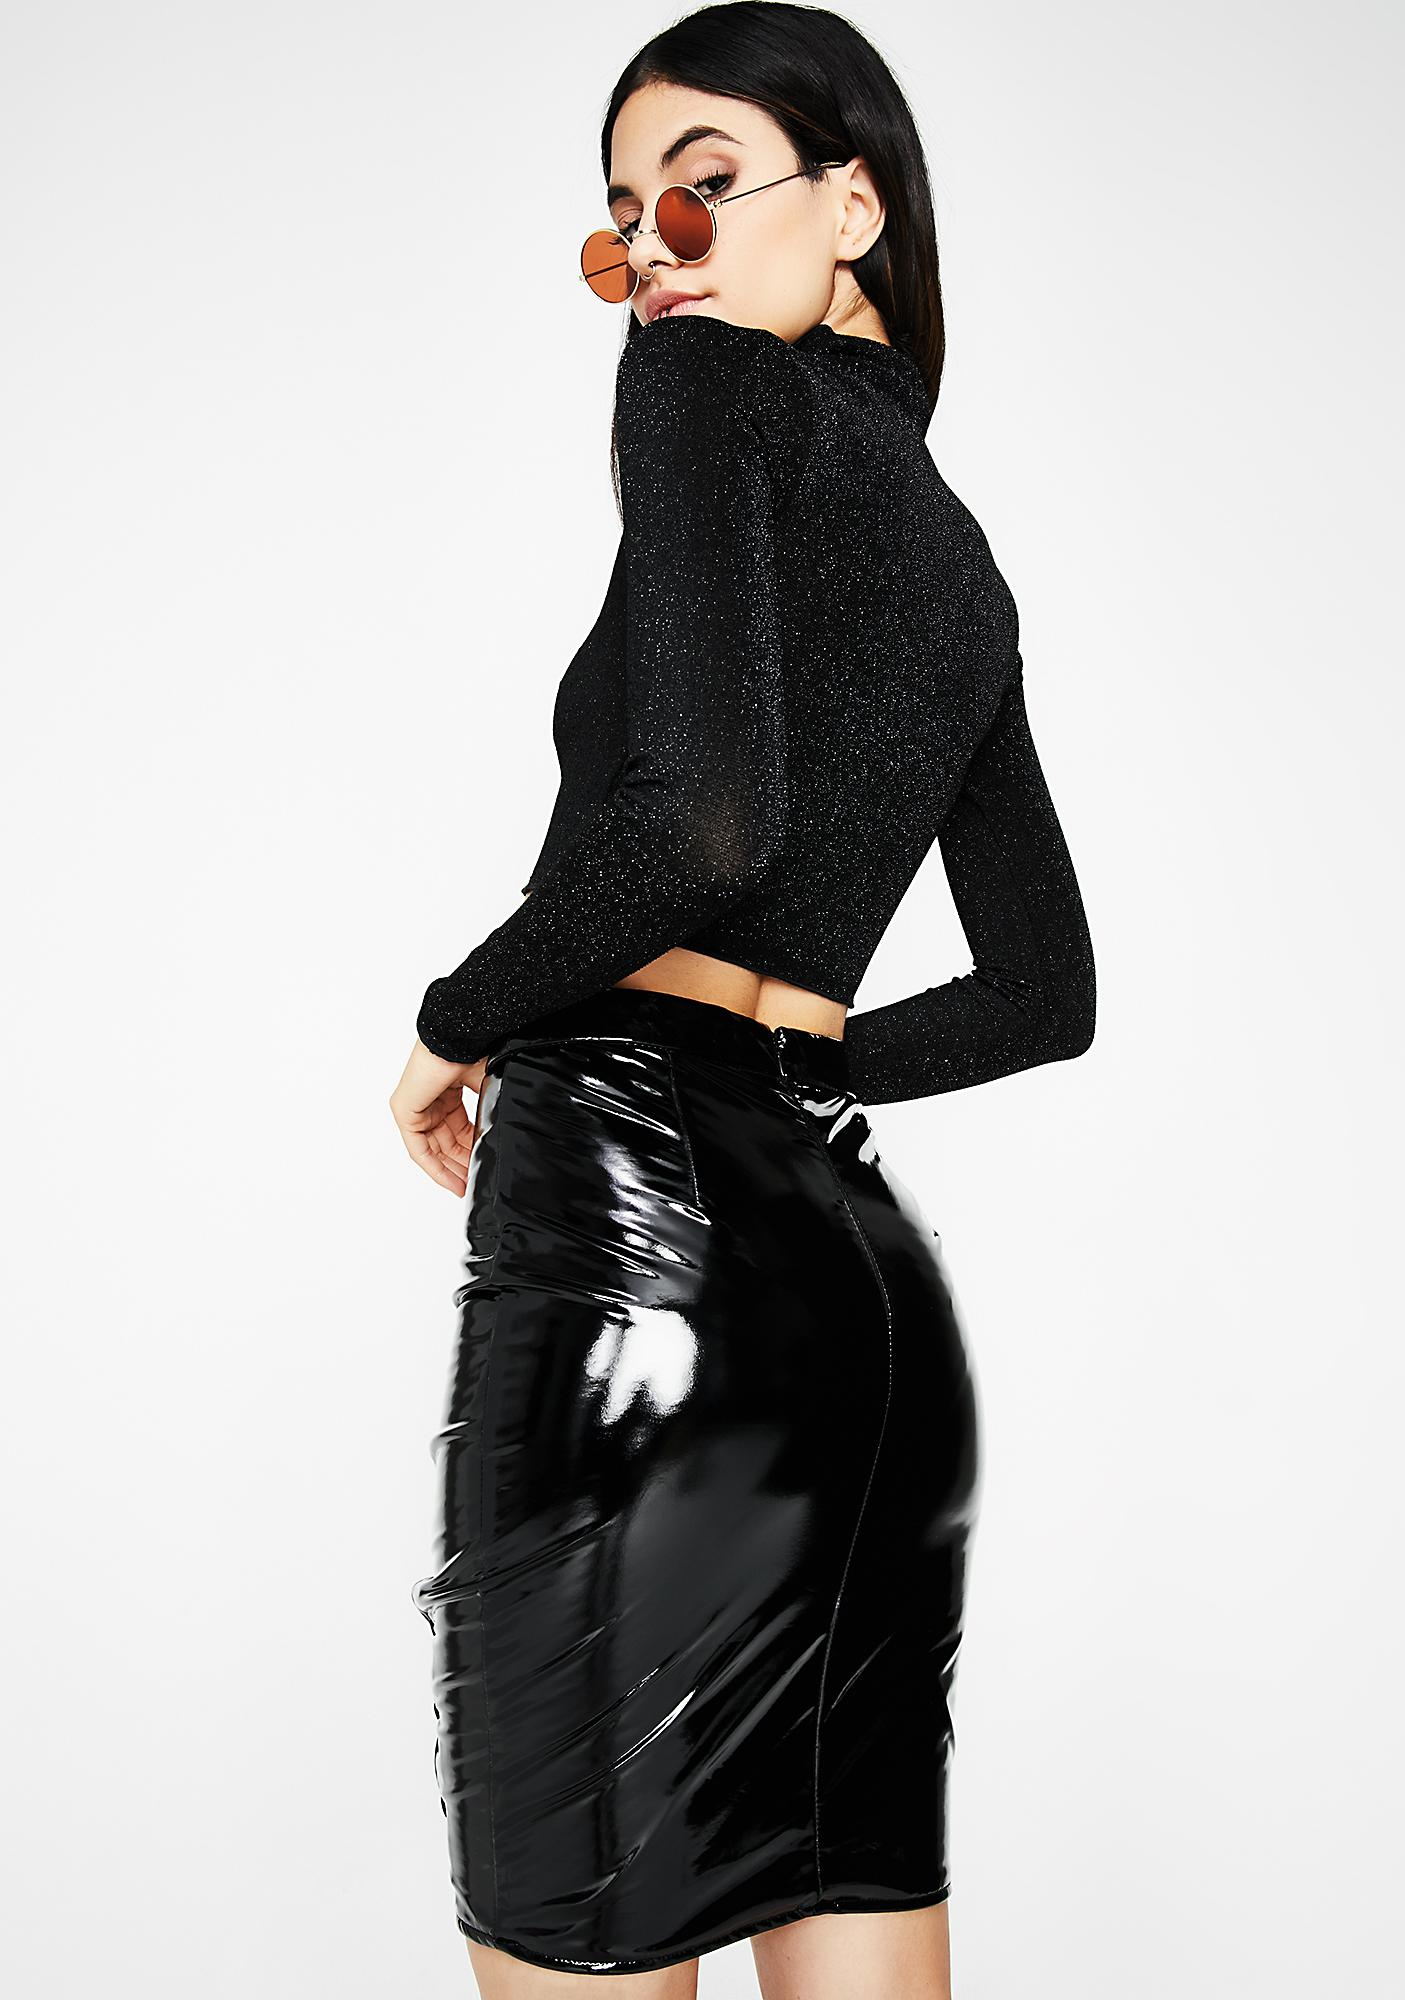 What U Think Vinyl Skirt